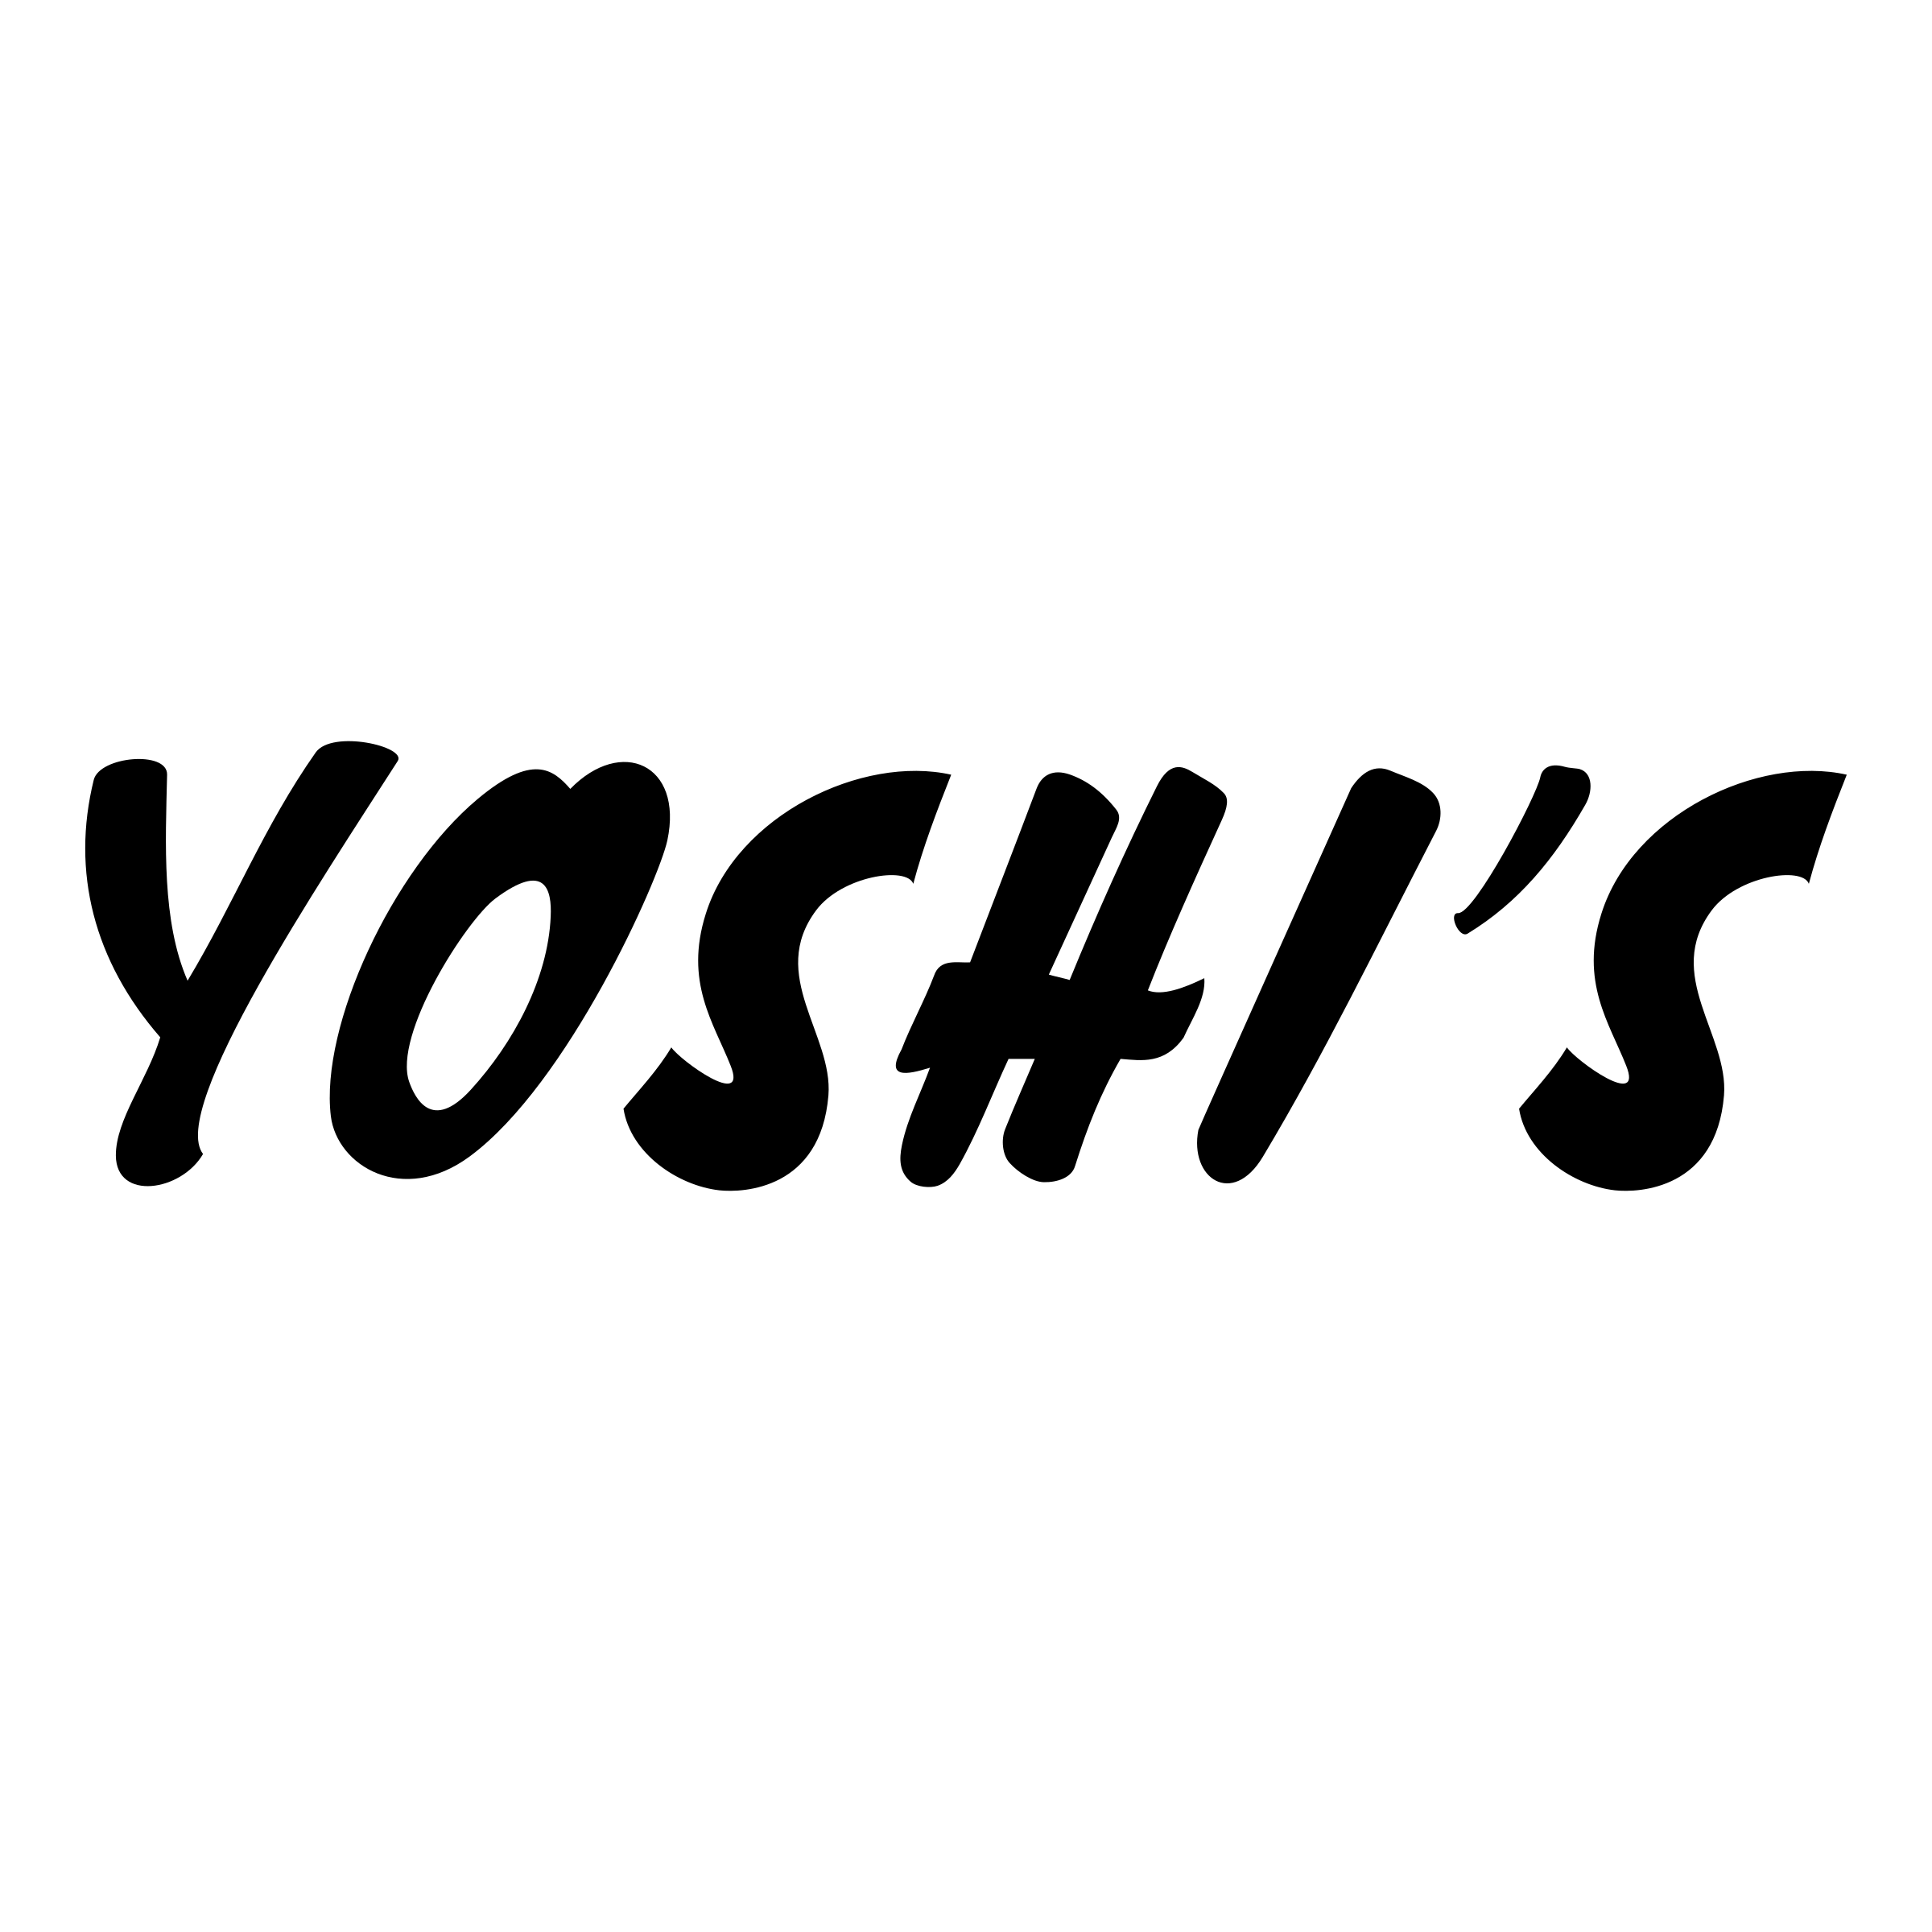 Yoshi vector black and white. S logo png transparent